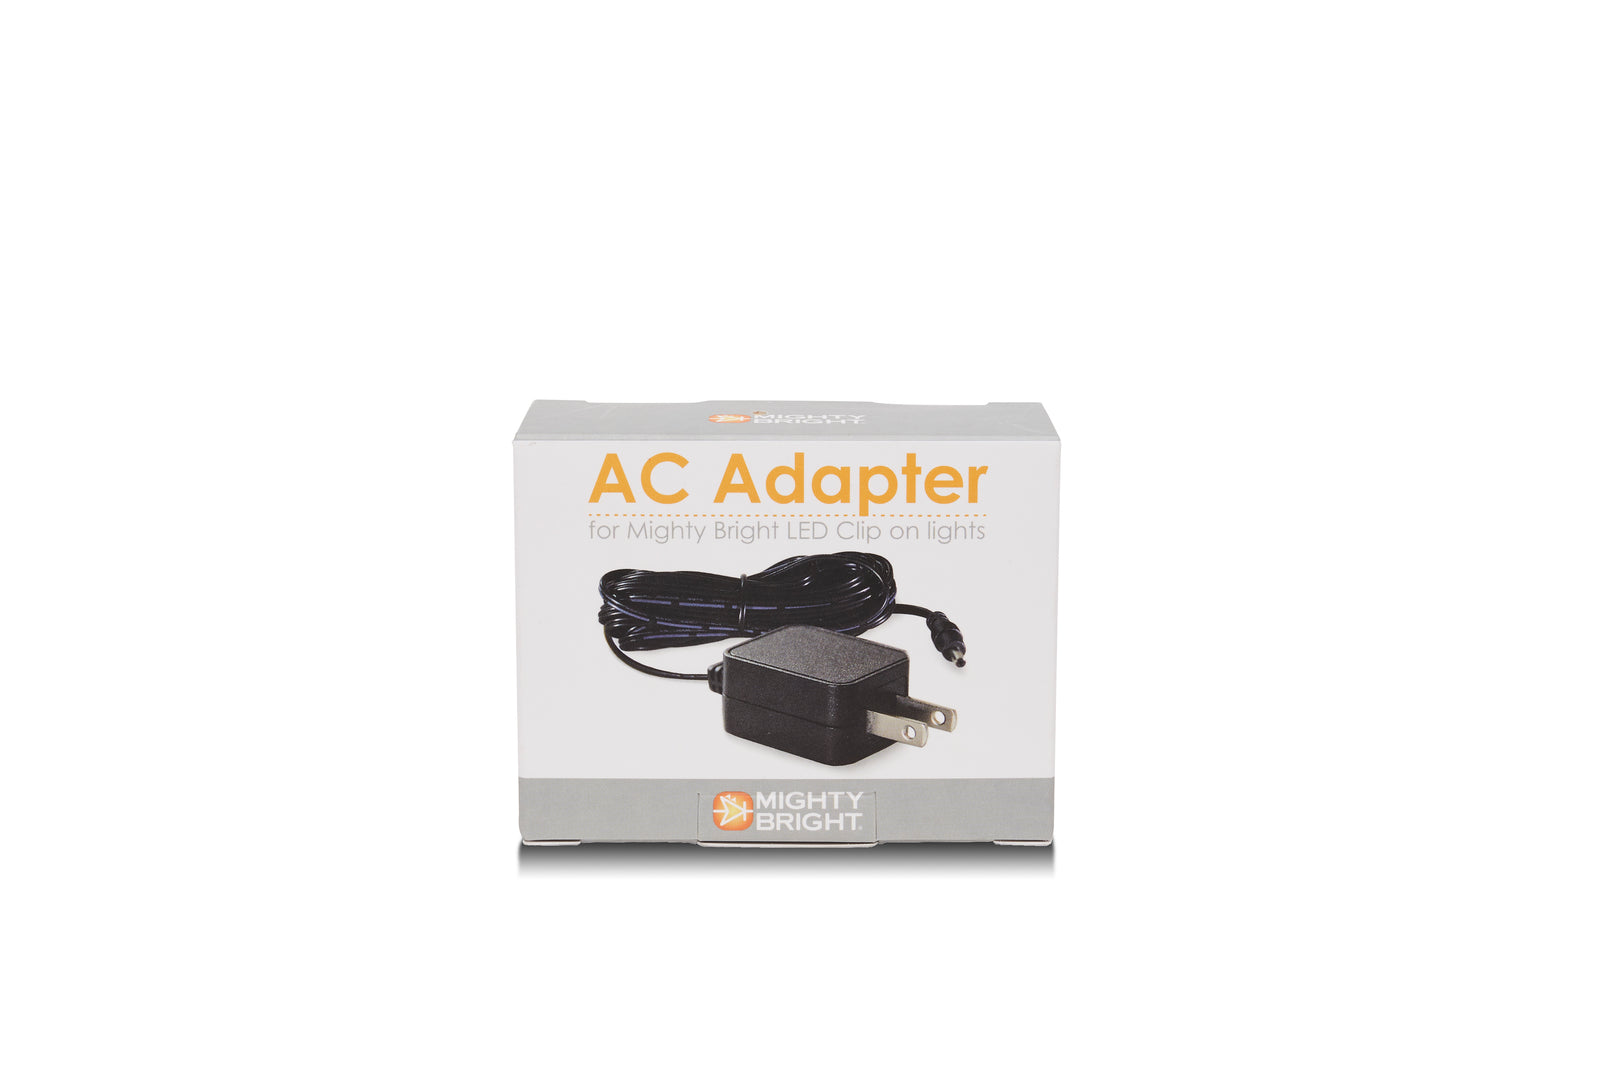 AC Adapter for Mighty Bright products - US version - packaging view